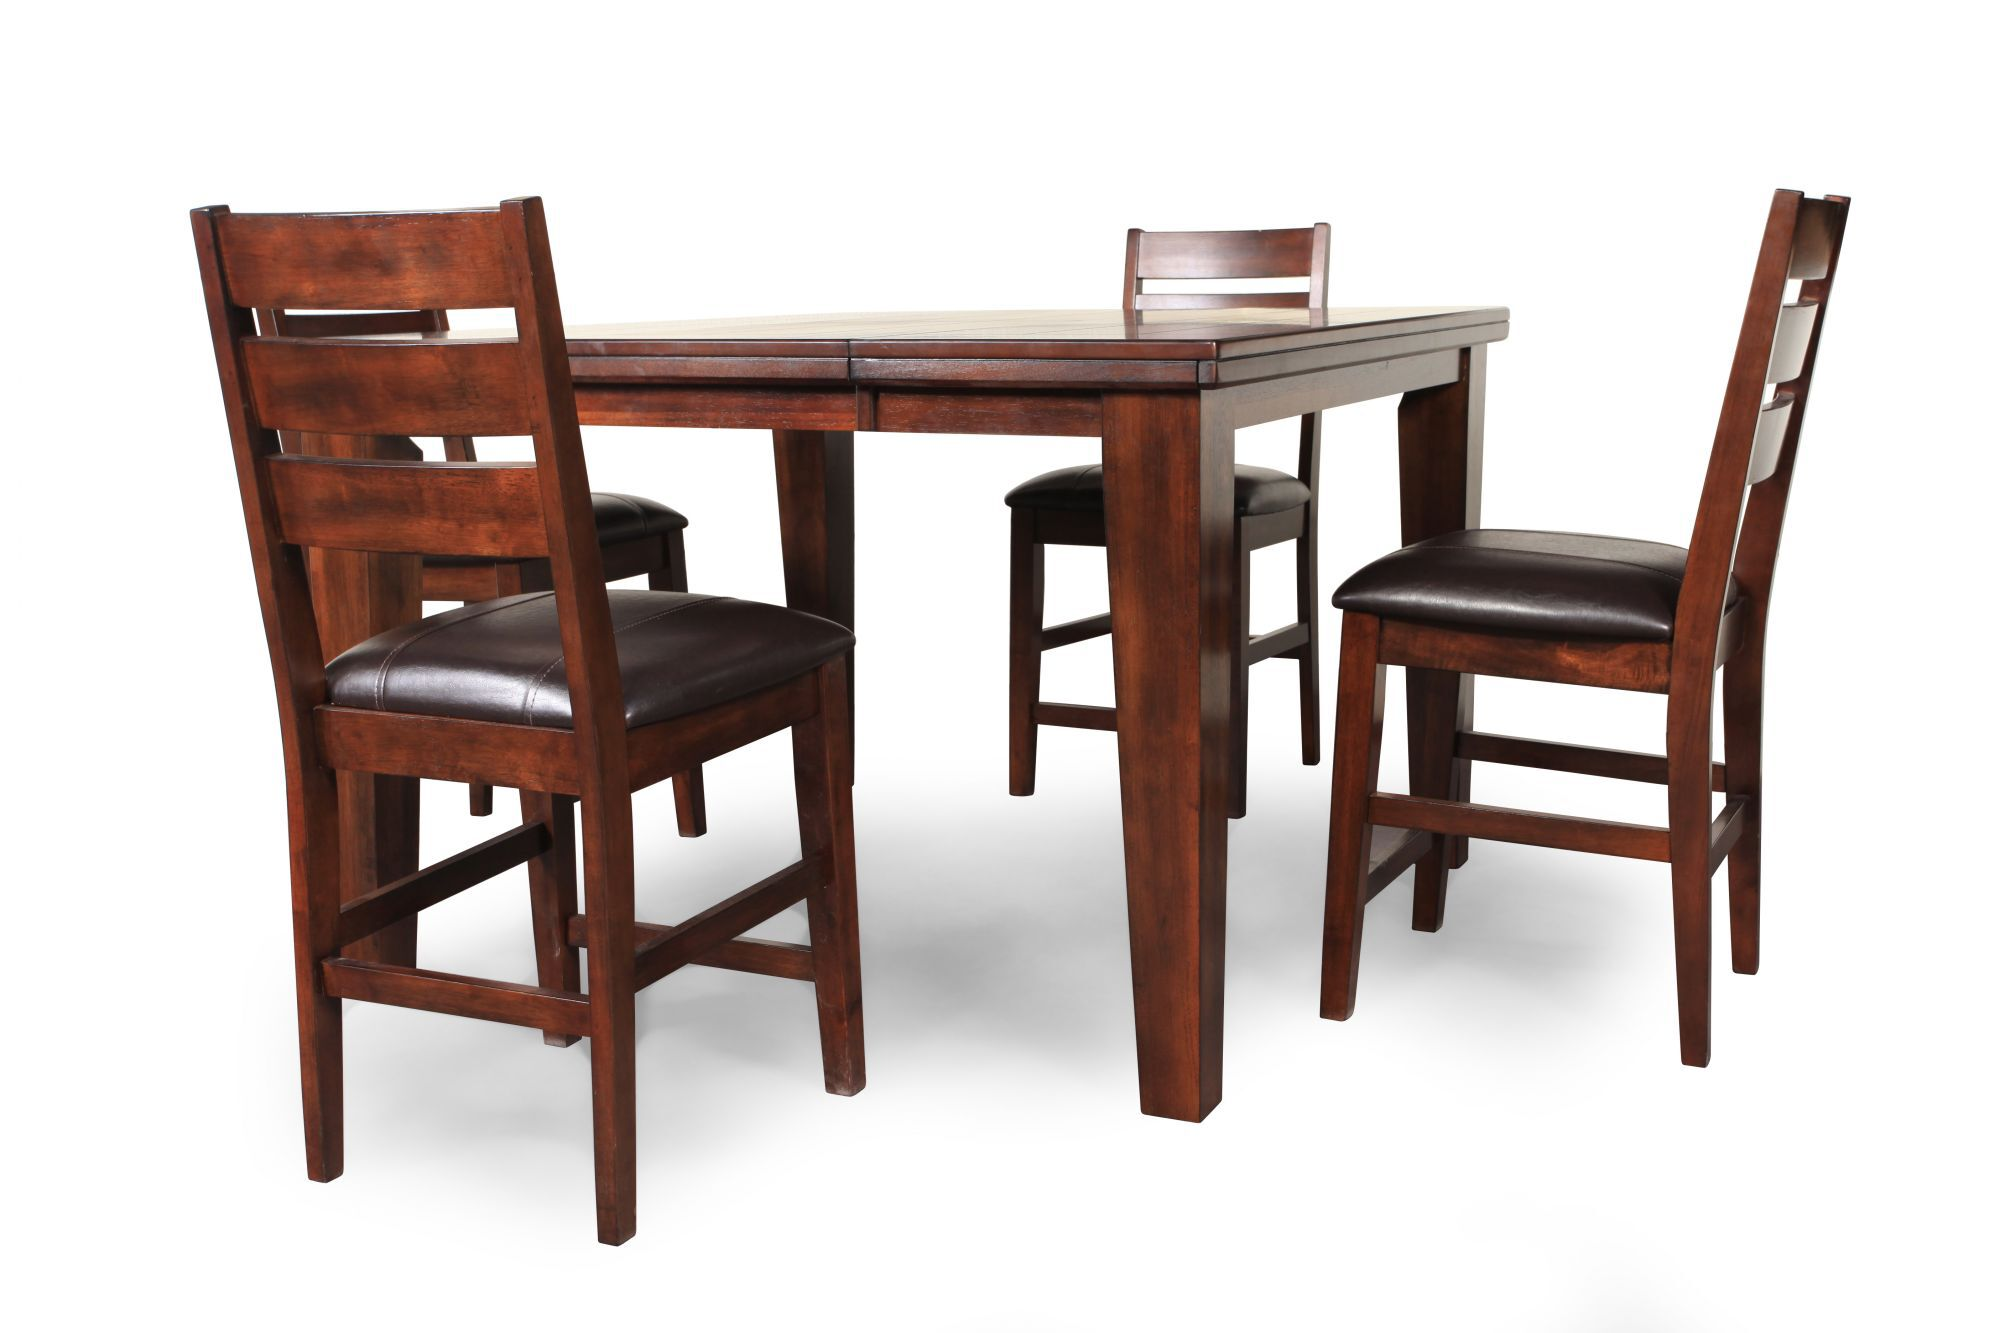 Images Five-Piece Traditional 36u0026quot; Pub Set with Leaf Insert in Dark Brown Five-Piece Traditional 36u0026quot; Pub Set with Leaf Insert in Dark Brown  sc 1 st  Mathis Brothers Furniture & Five-Piece Traditional 36